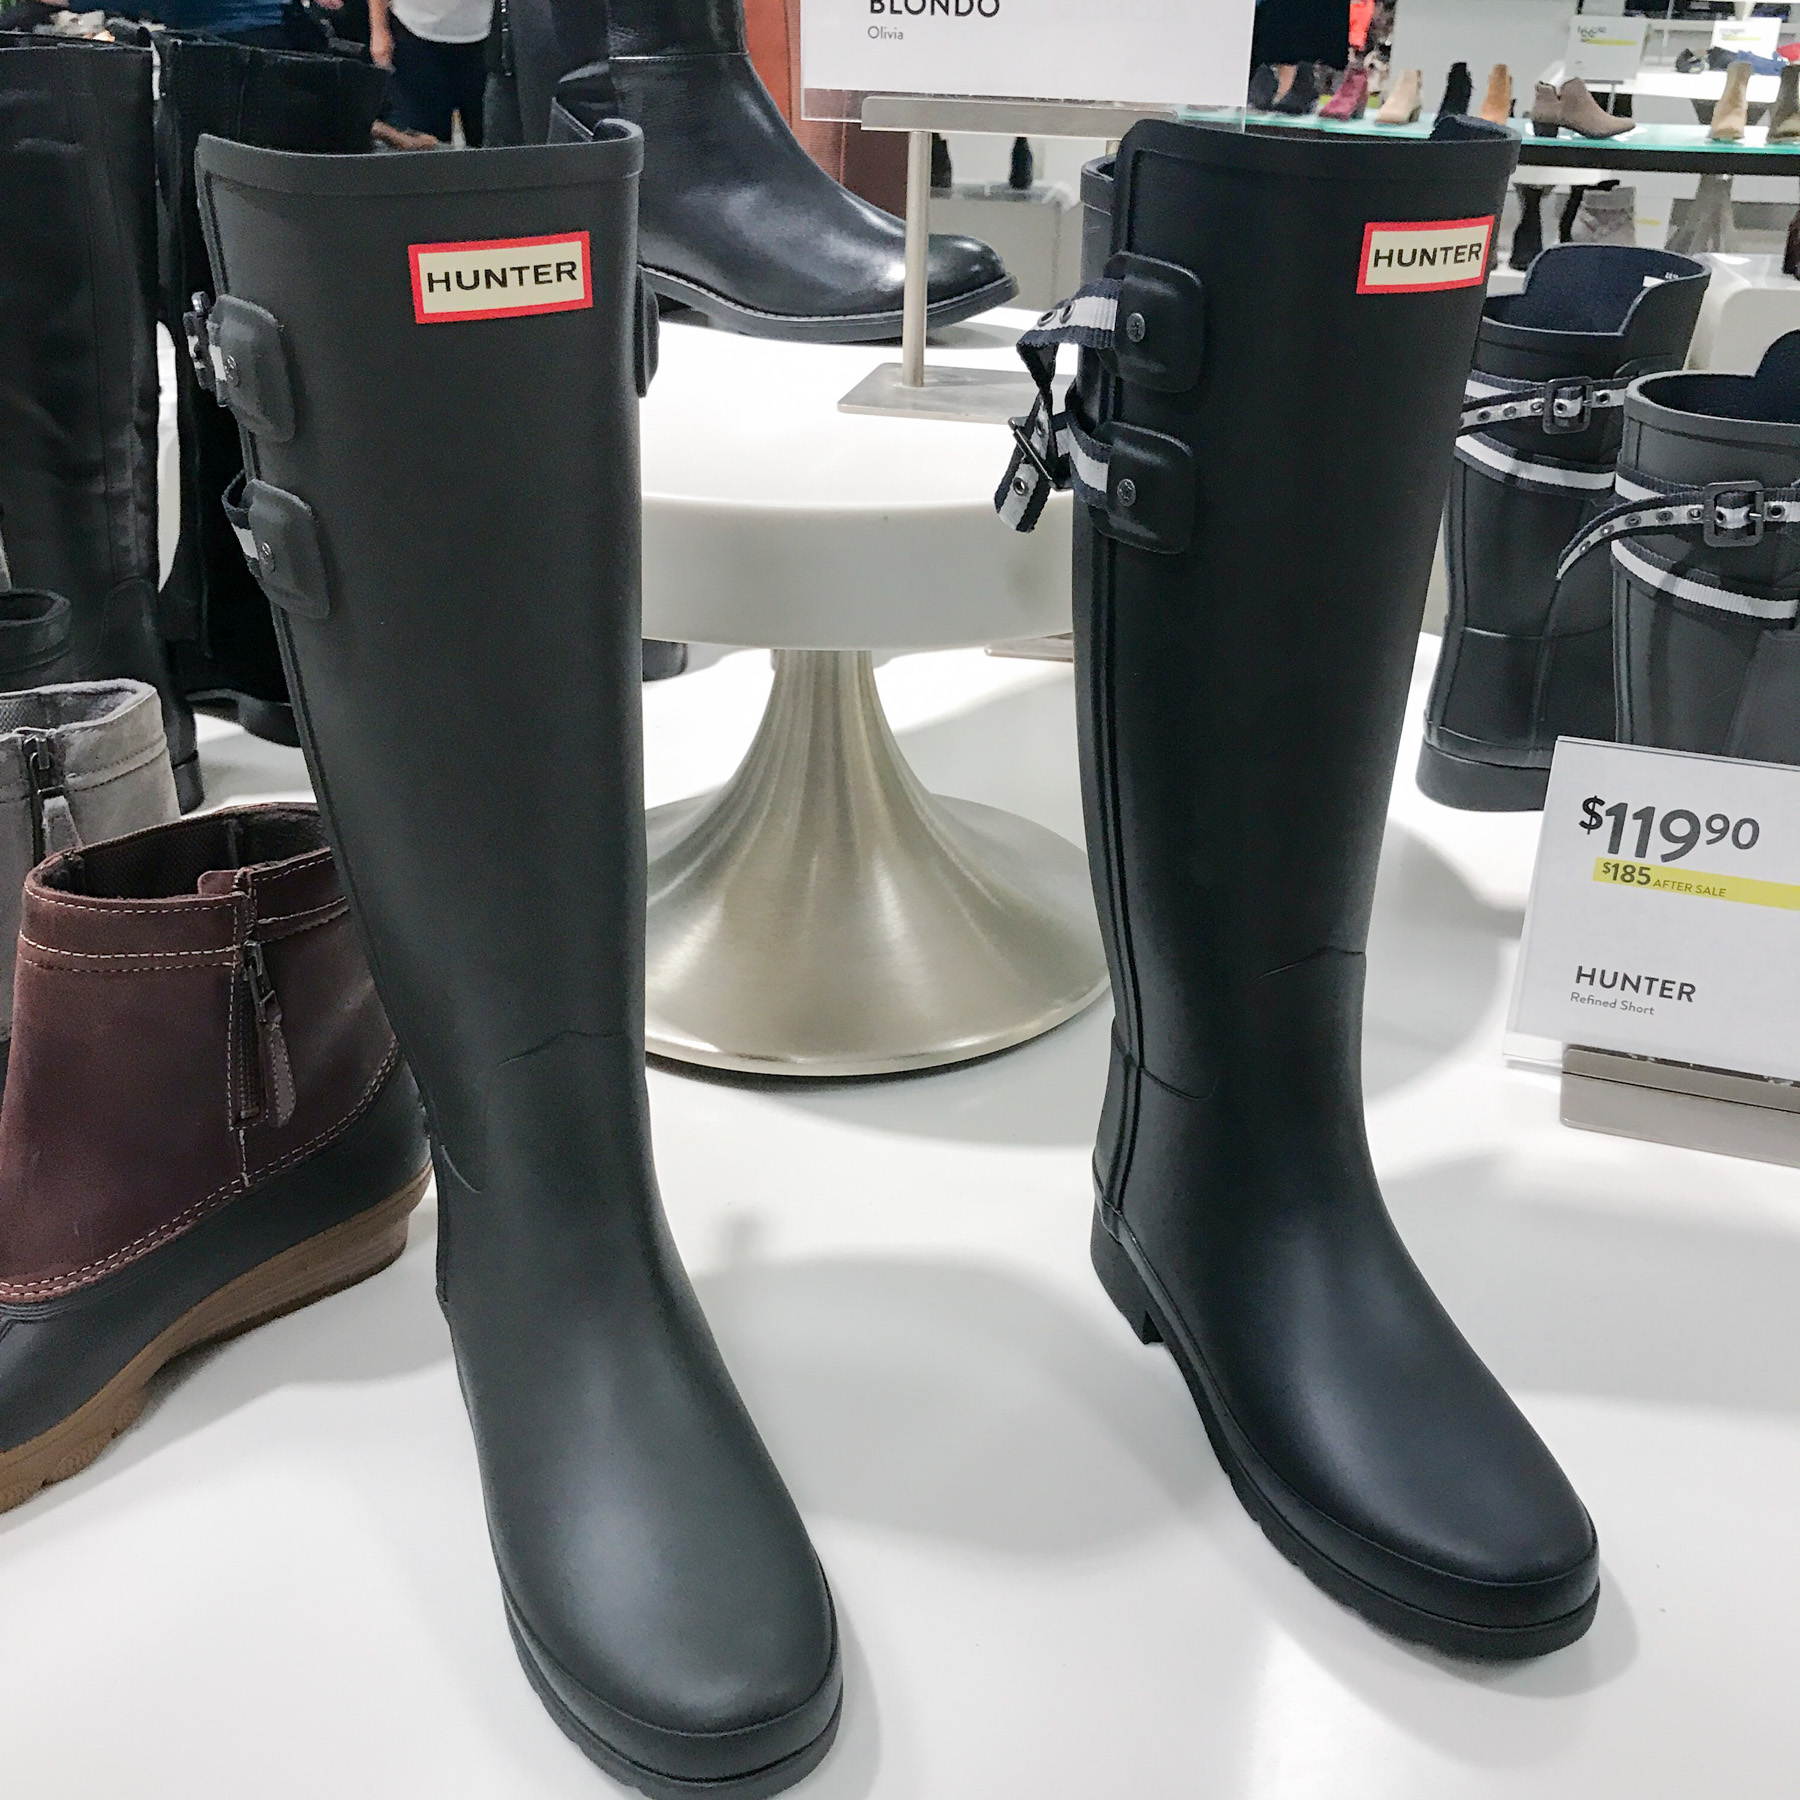 4feb75fb5 Hunter Boots — Still in stock! Tick Tock: What's Still in Stock - Nordstrom  Anniversary Sale